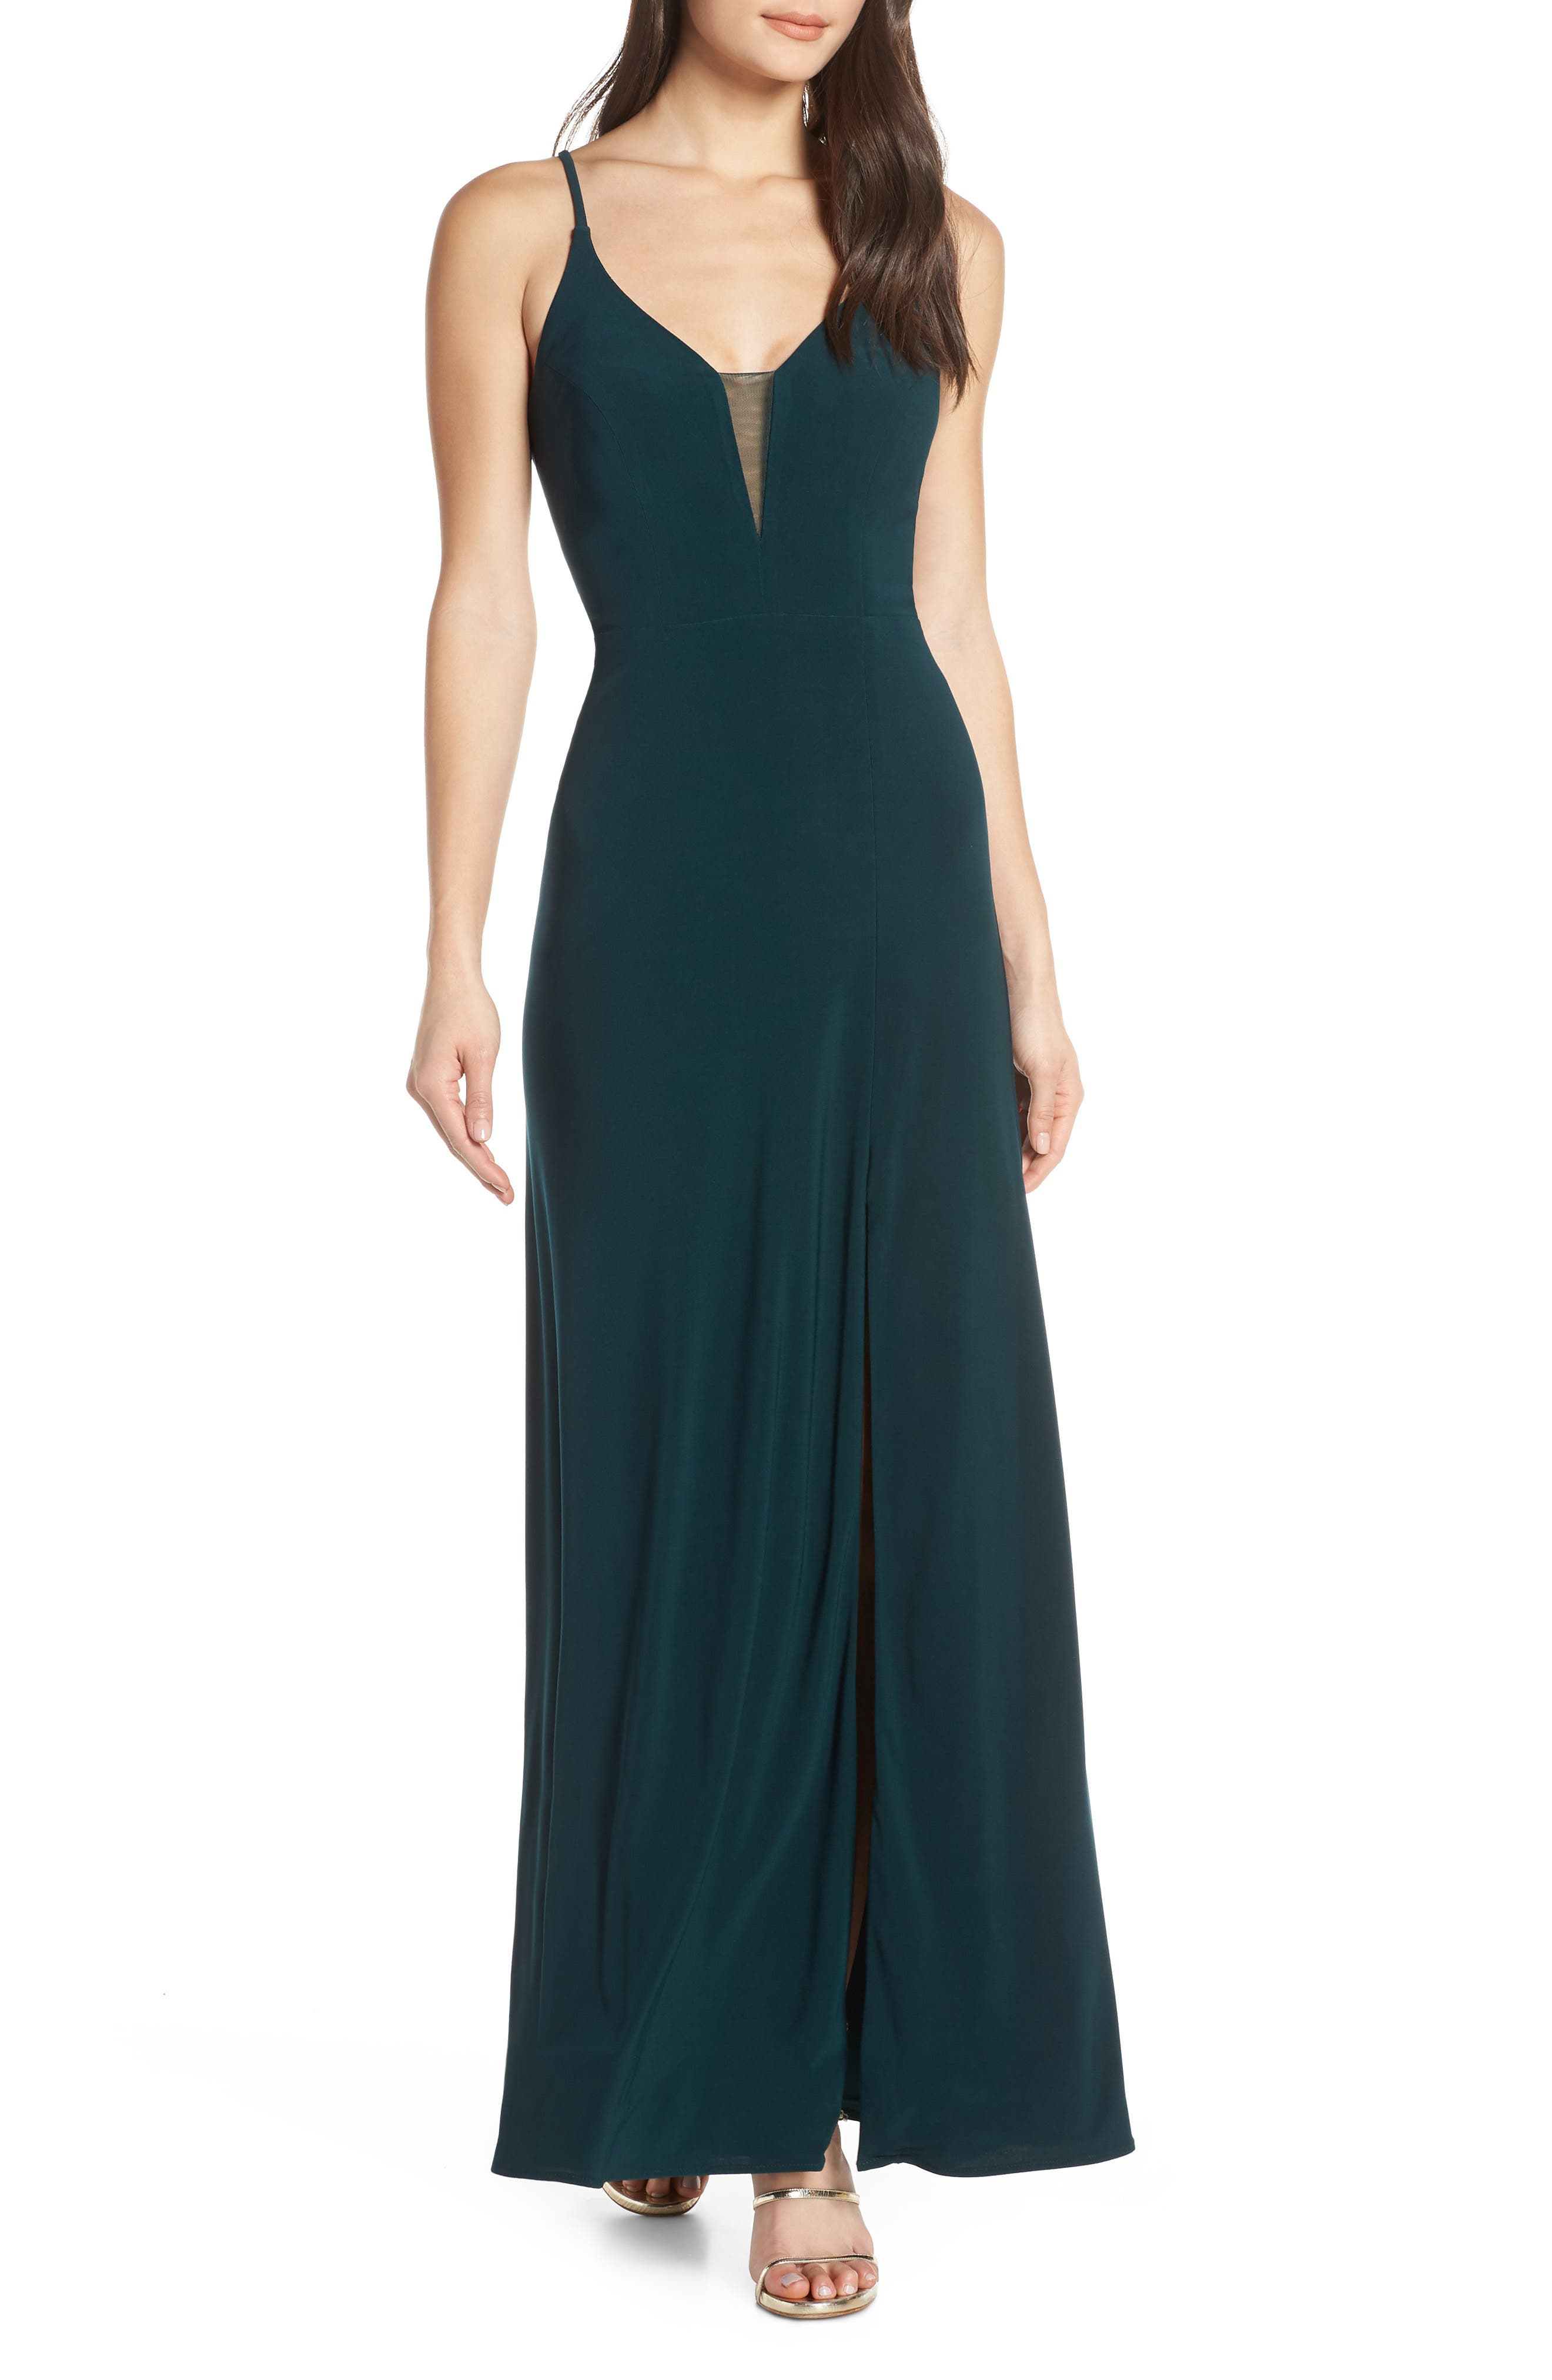 Morgan & Co. Lace-Up Back Evening Dress